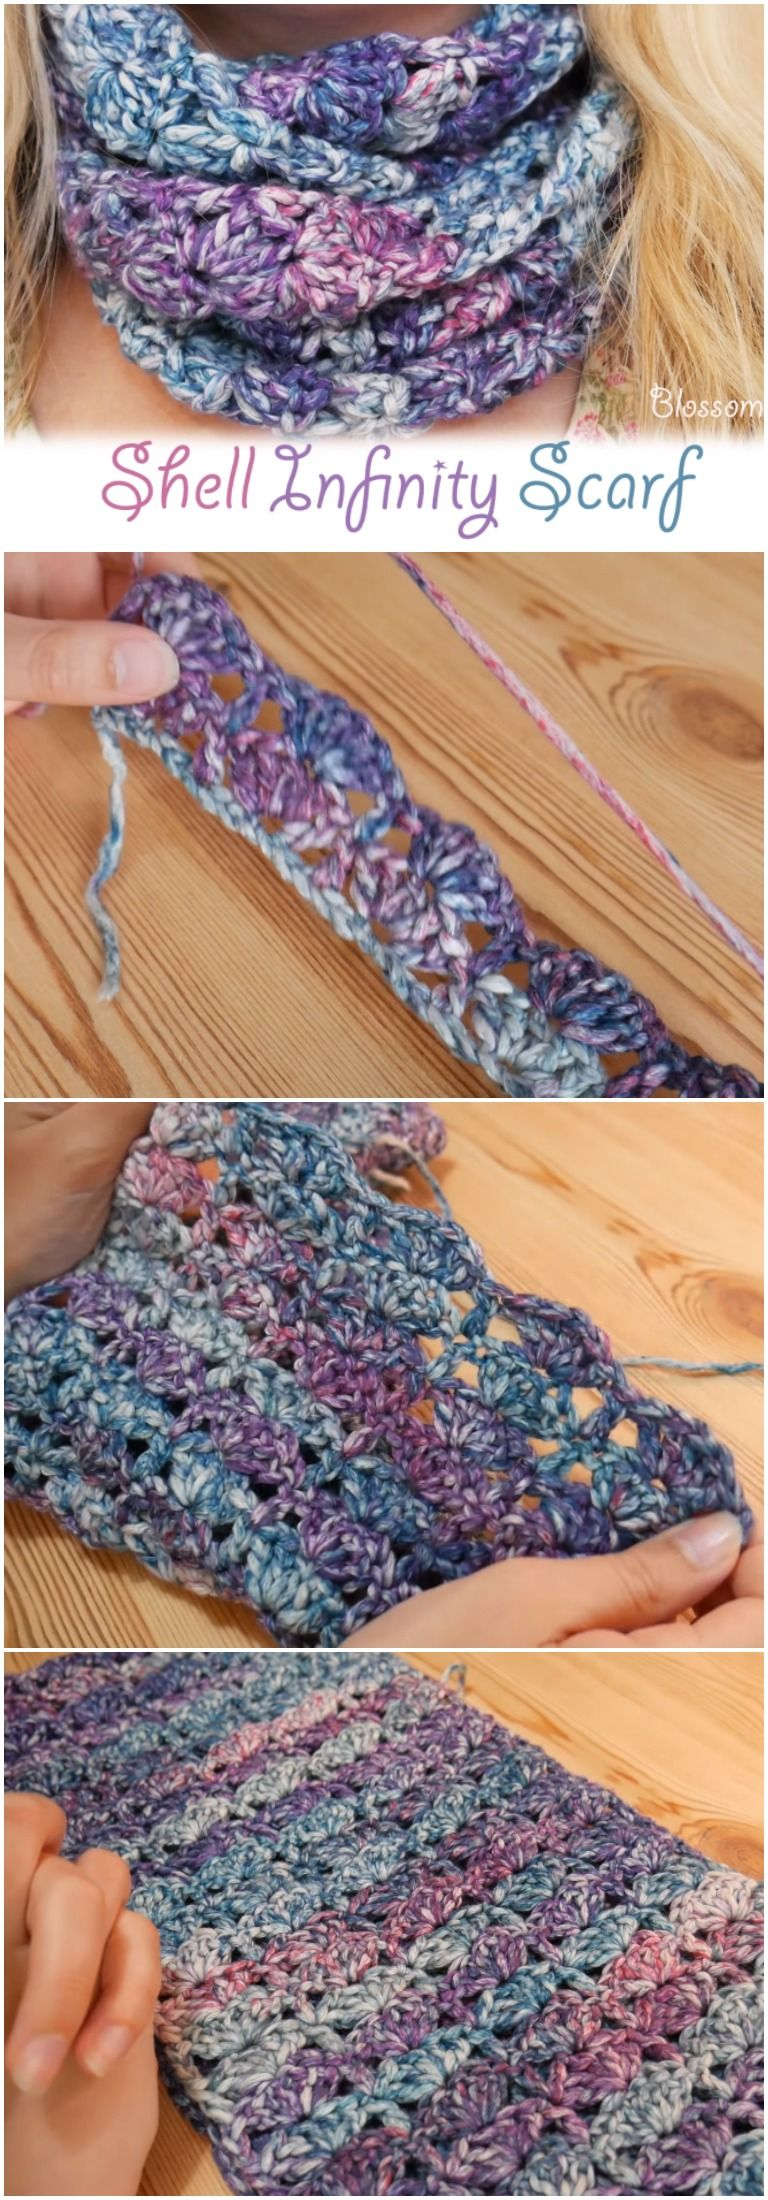 Crochet Shell Infinity Scarf Free Instructions | crochet collection ...